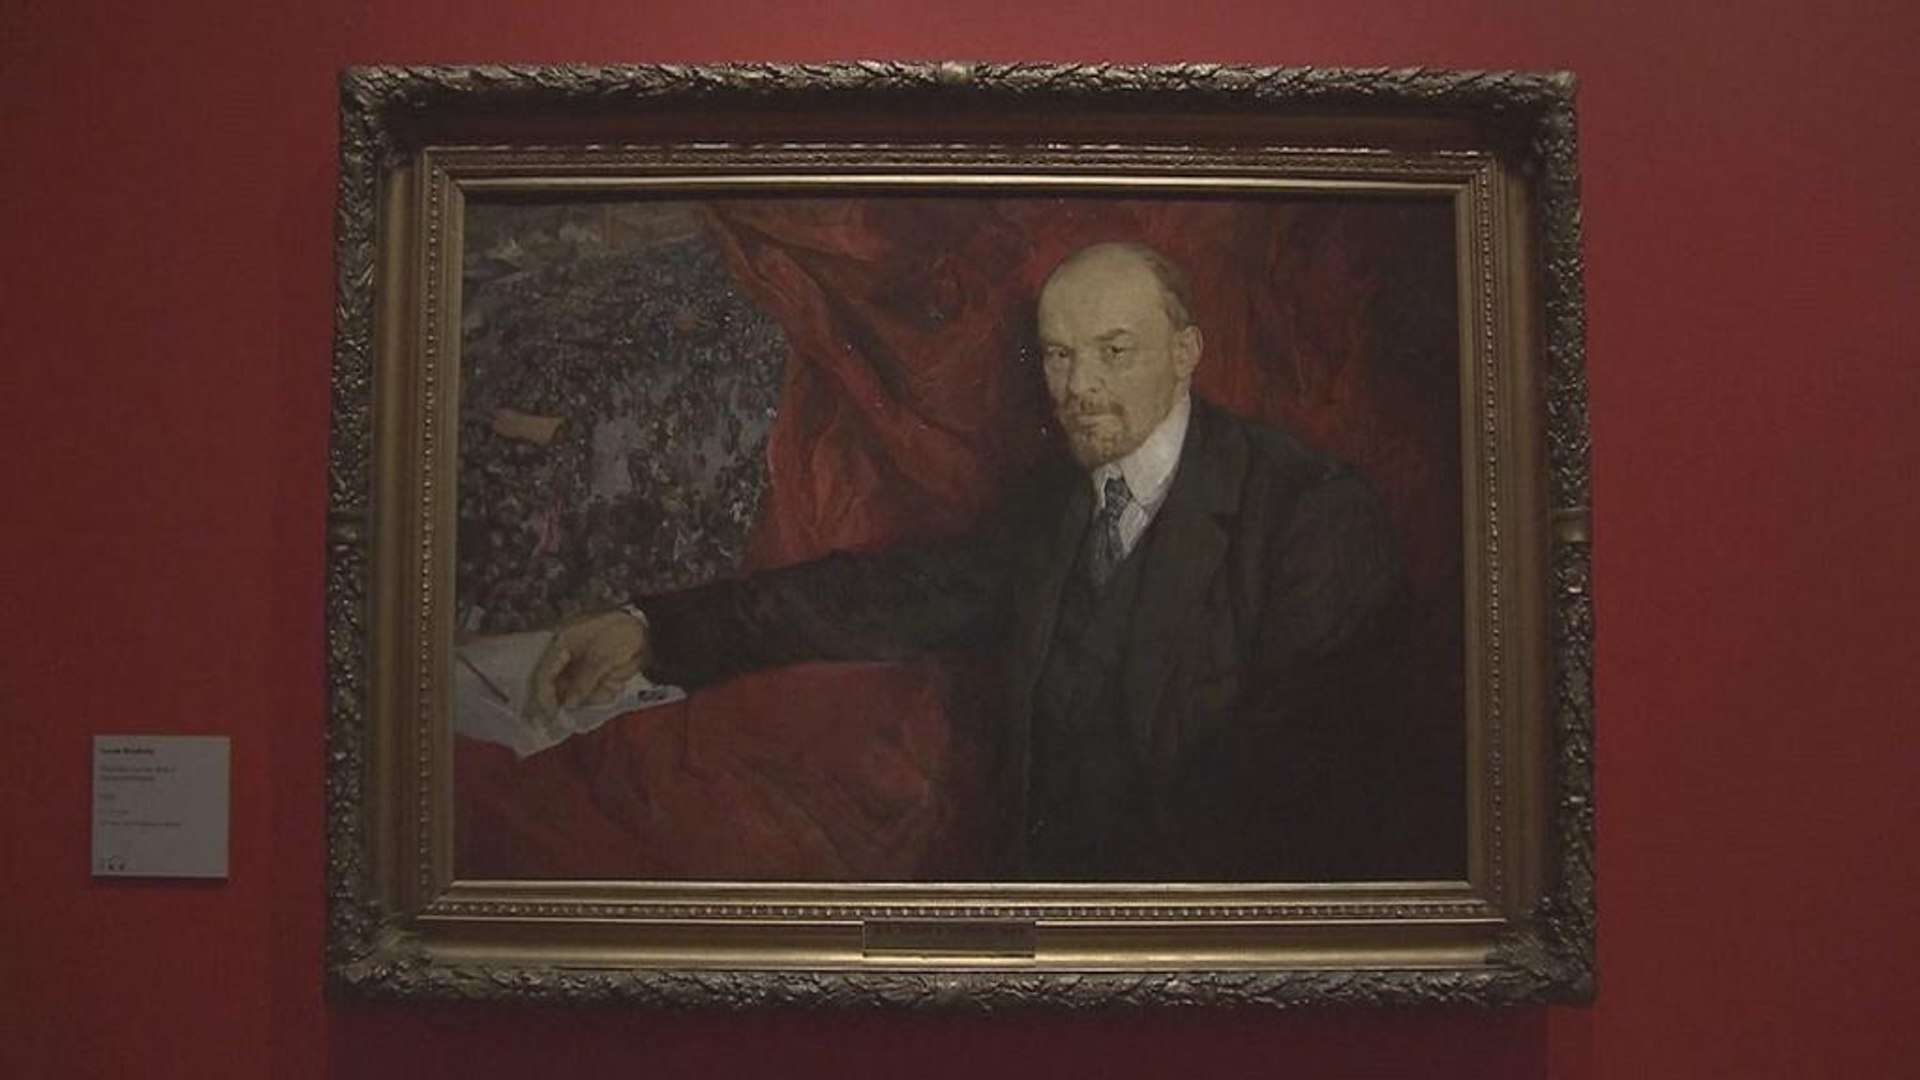 The Royal Academy in London marks 100th anniversary of Russian Revolution